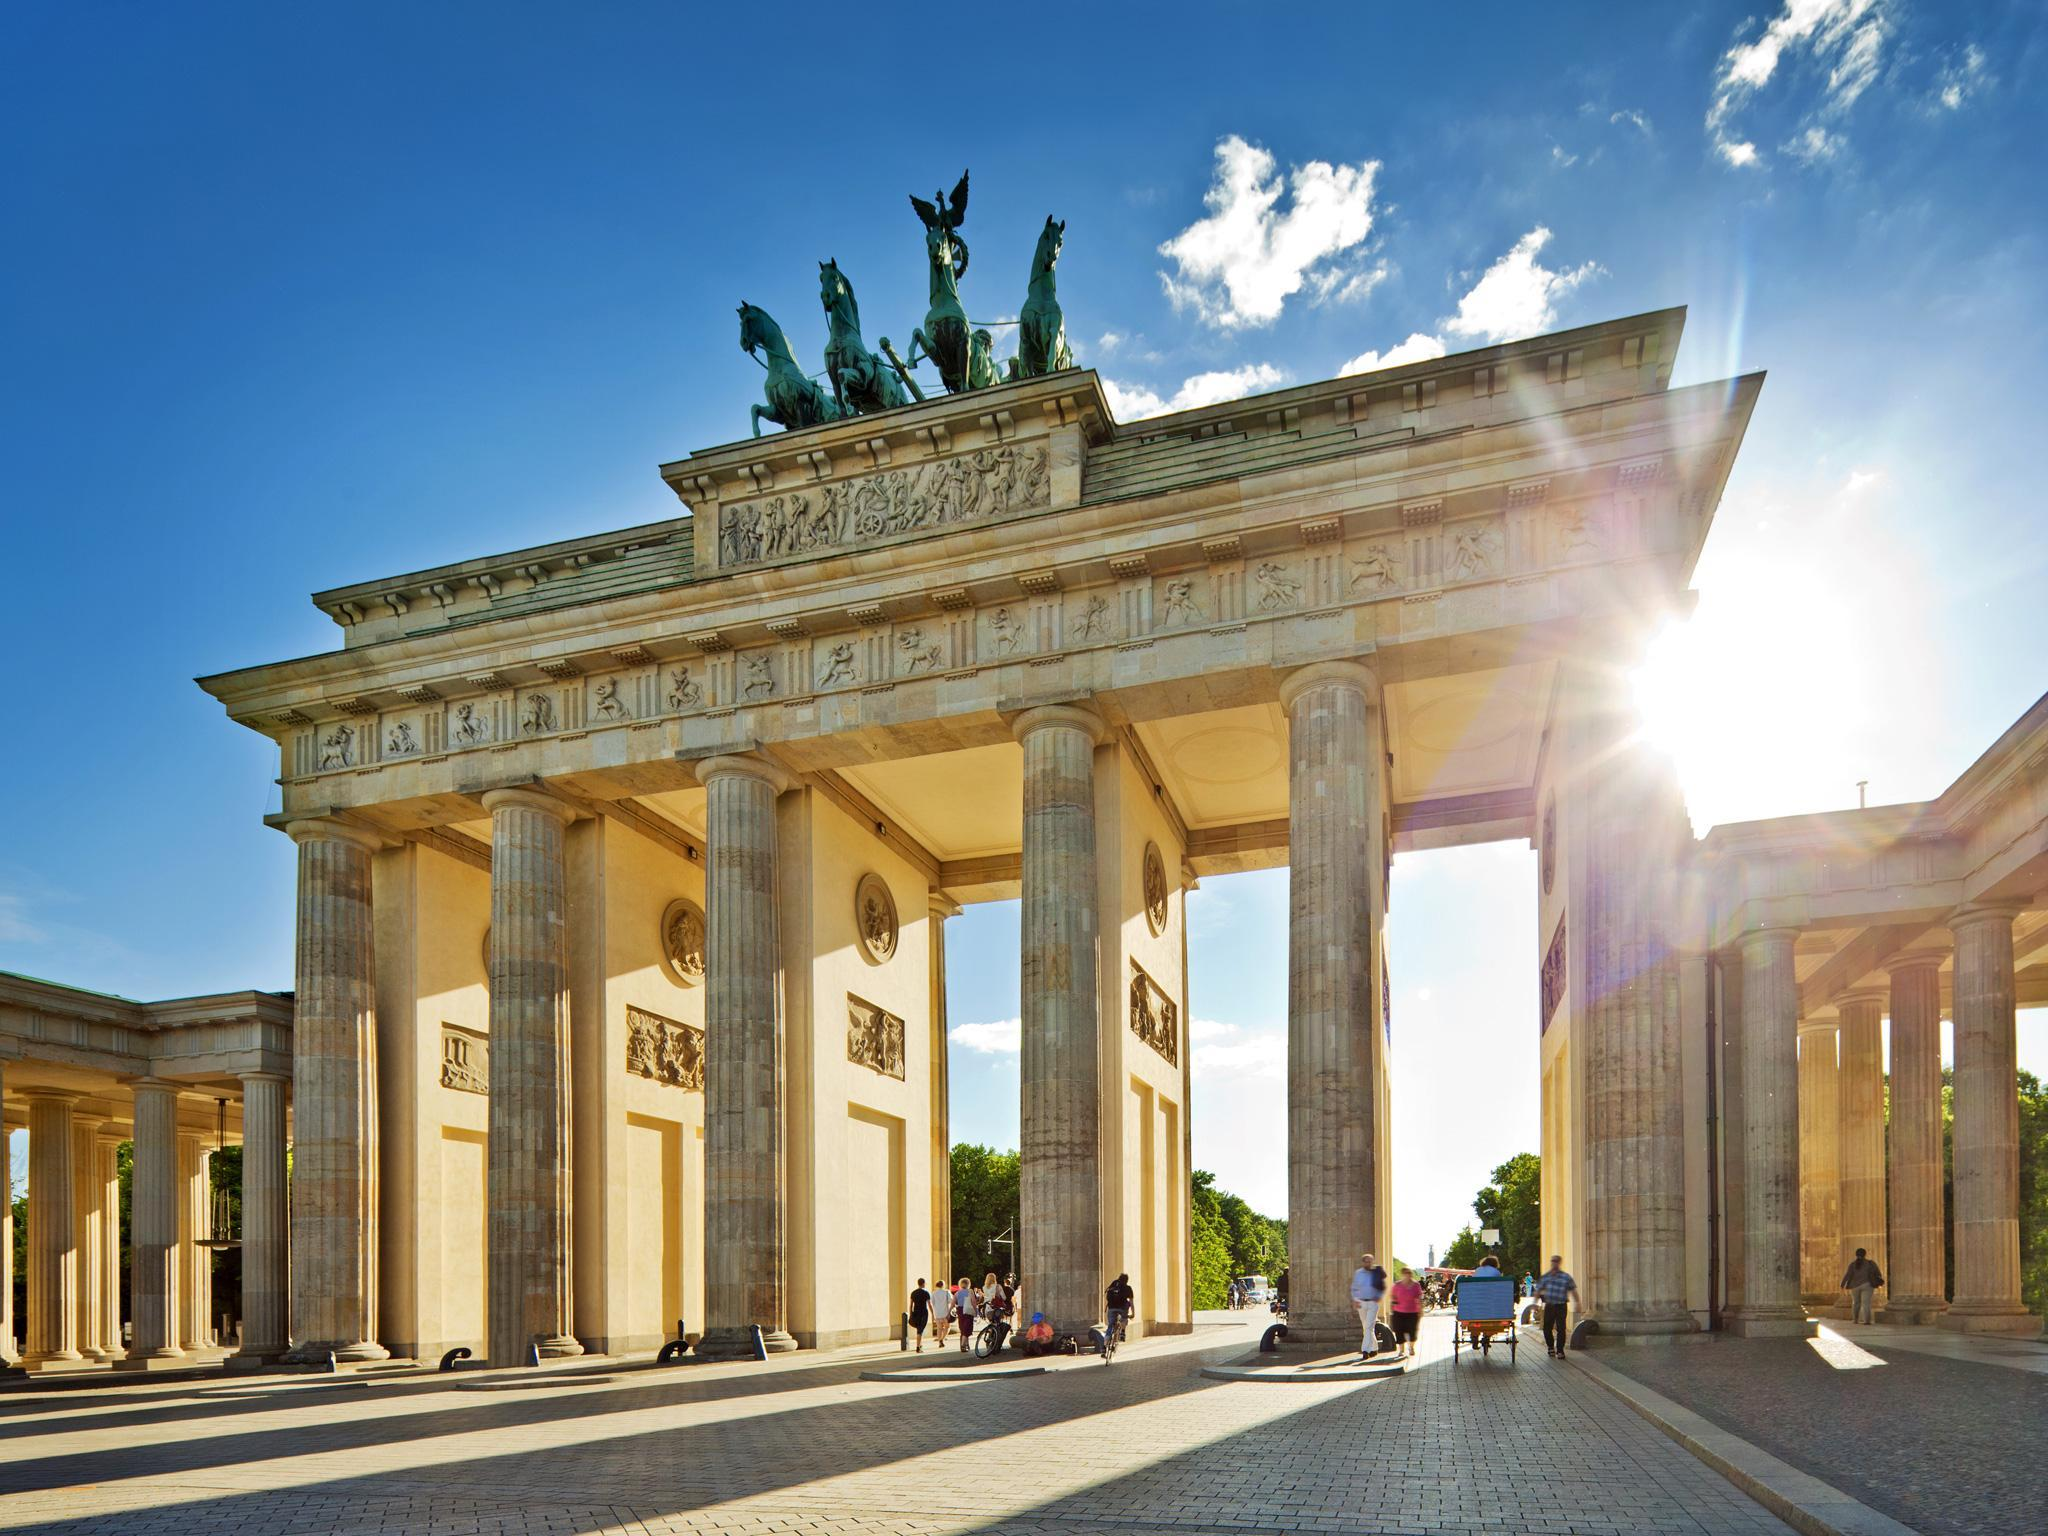 Popular sights of Berlin: we form an interesting route 95